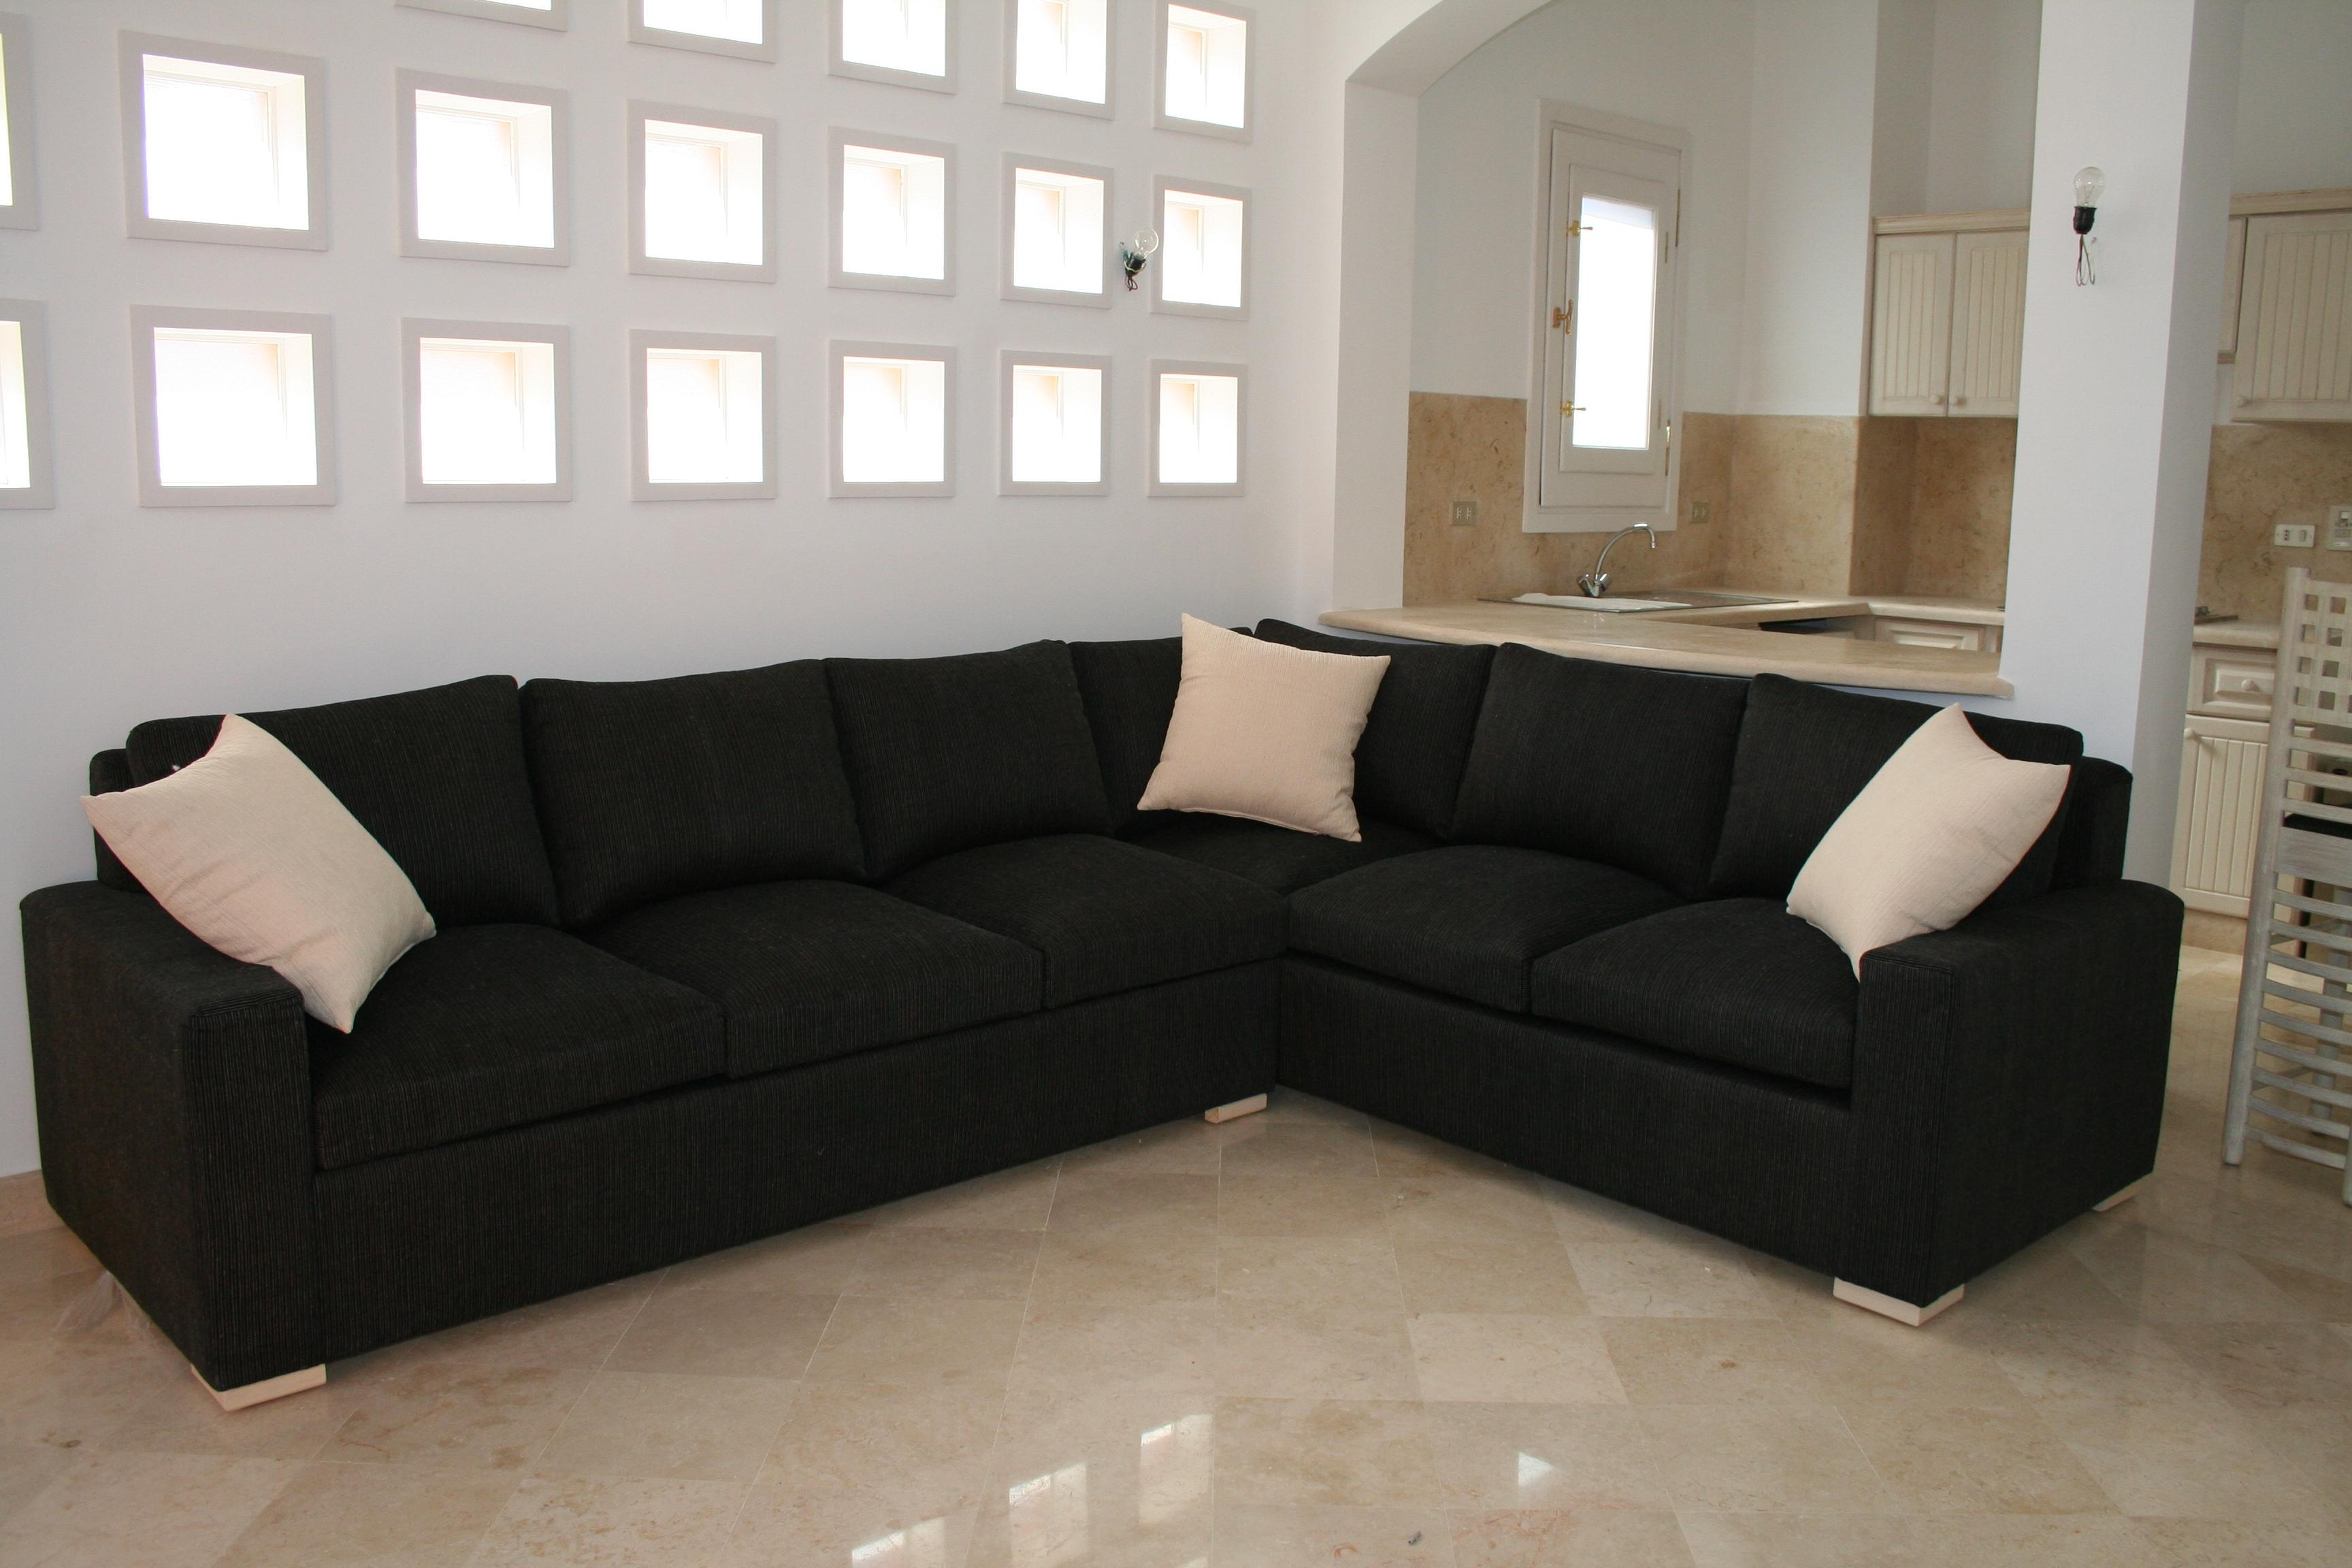 Furniture: Nice Dark Ikea Sectionals Couch With Ikea Ottoman For With Regard To Nice Sectional Couches (Image 10 of 20)